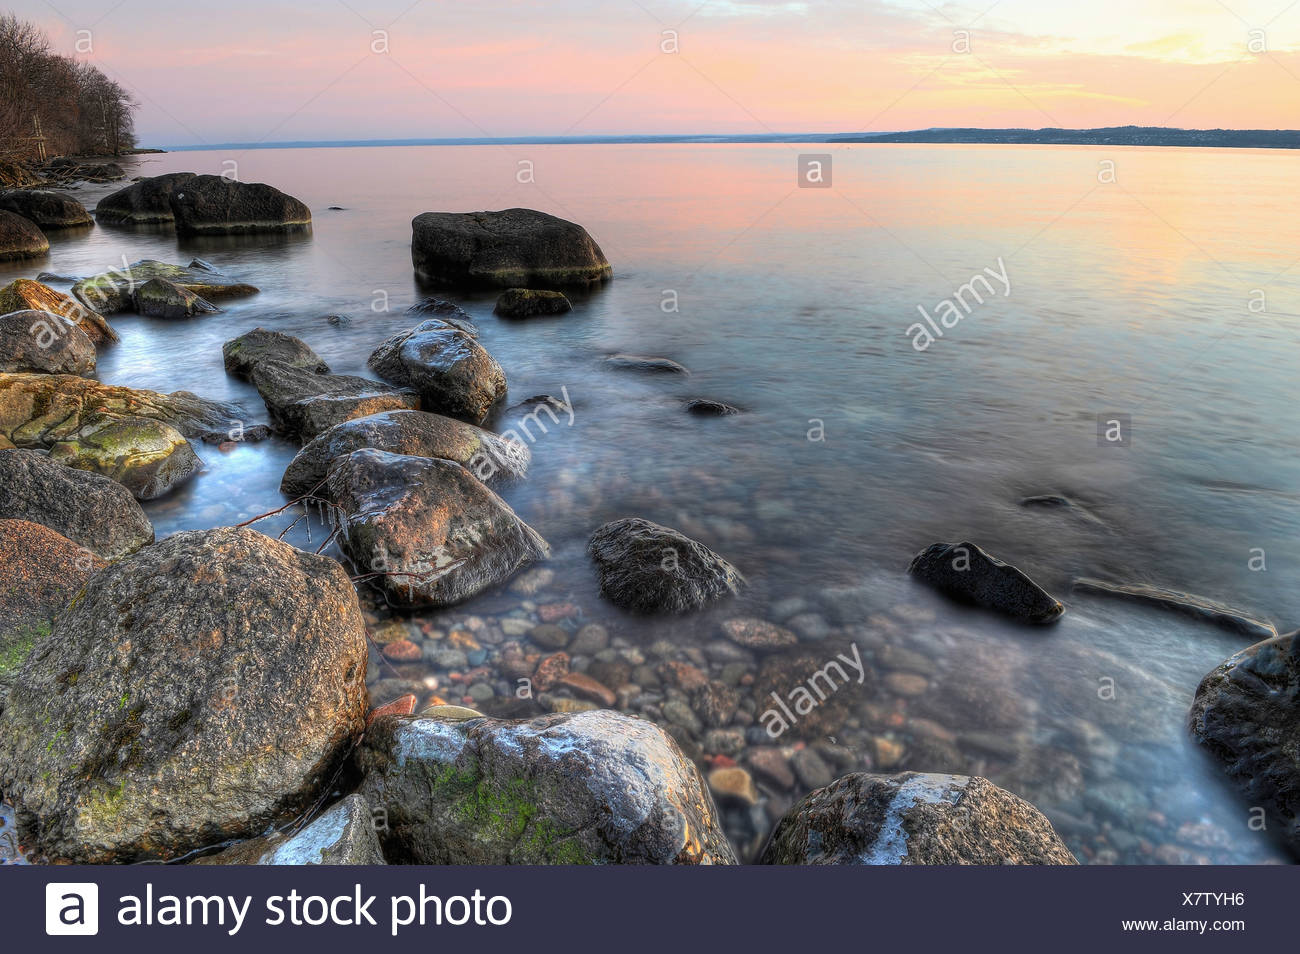 Rock by water's edge - Stock Image